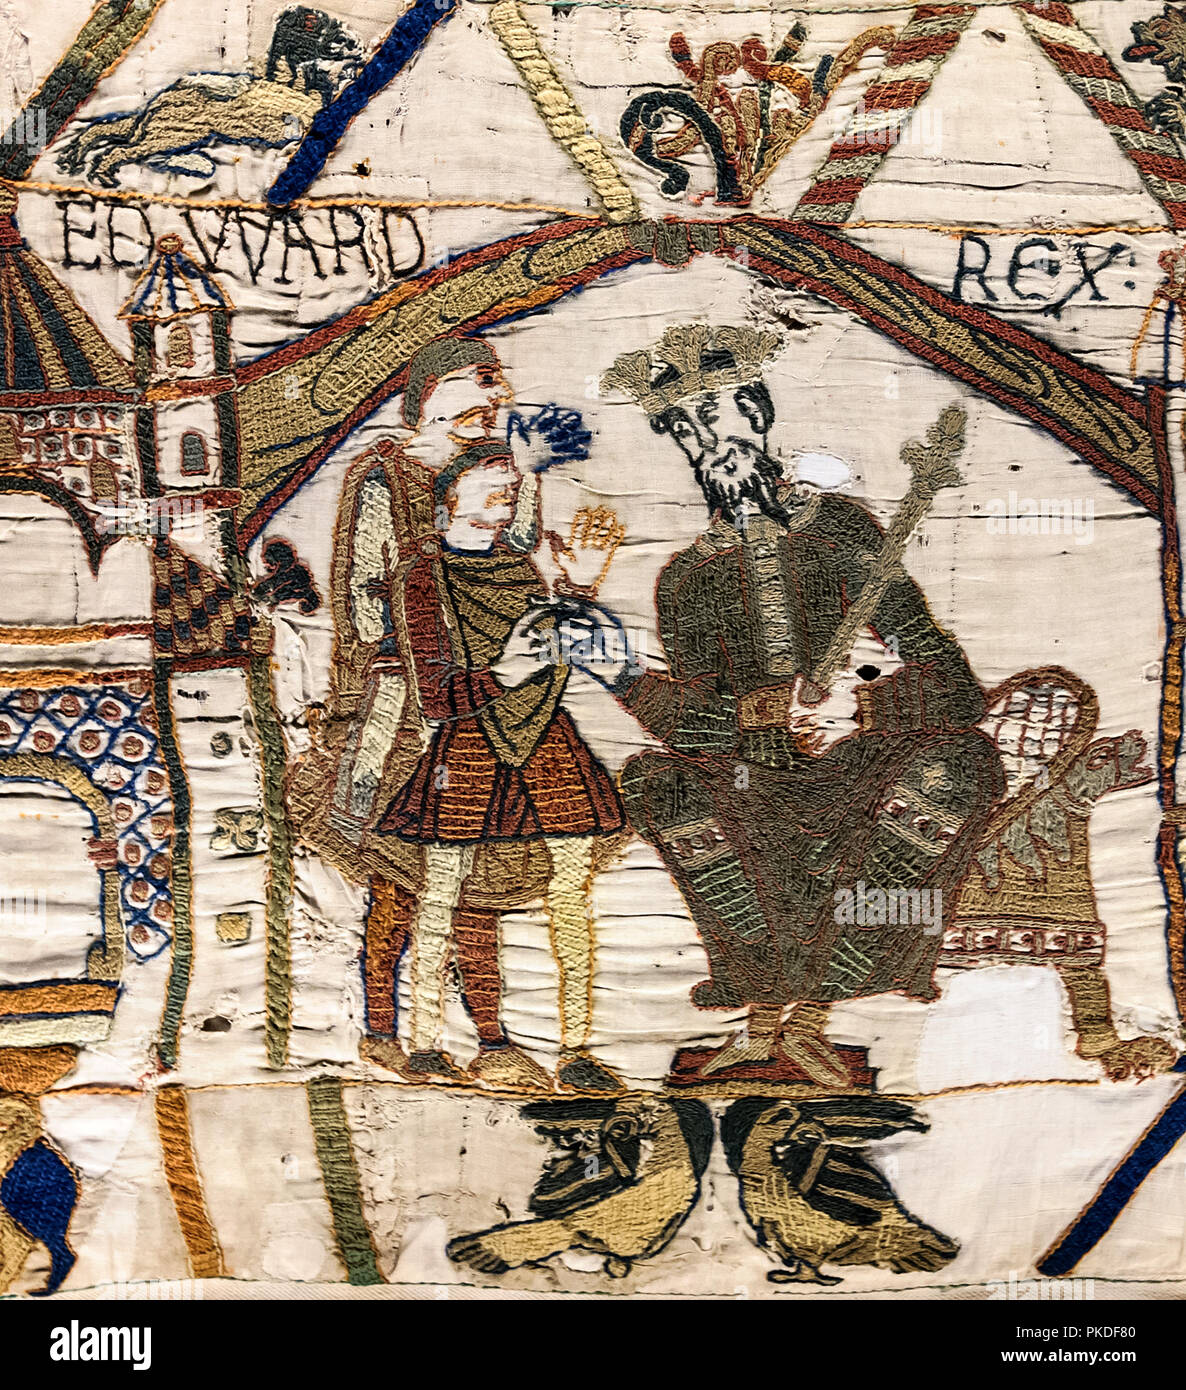 Teppich Von Bayeux Pdf King Edward The Confessor Stockfotos And King Edward The